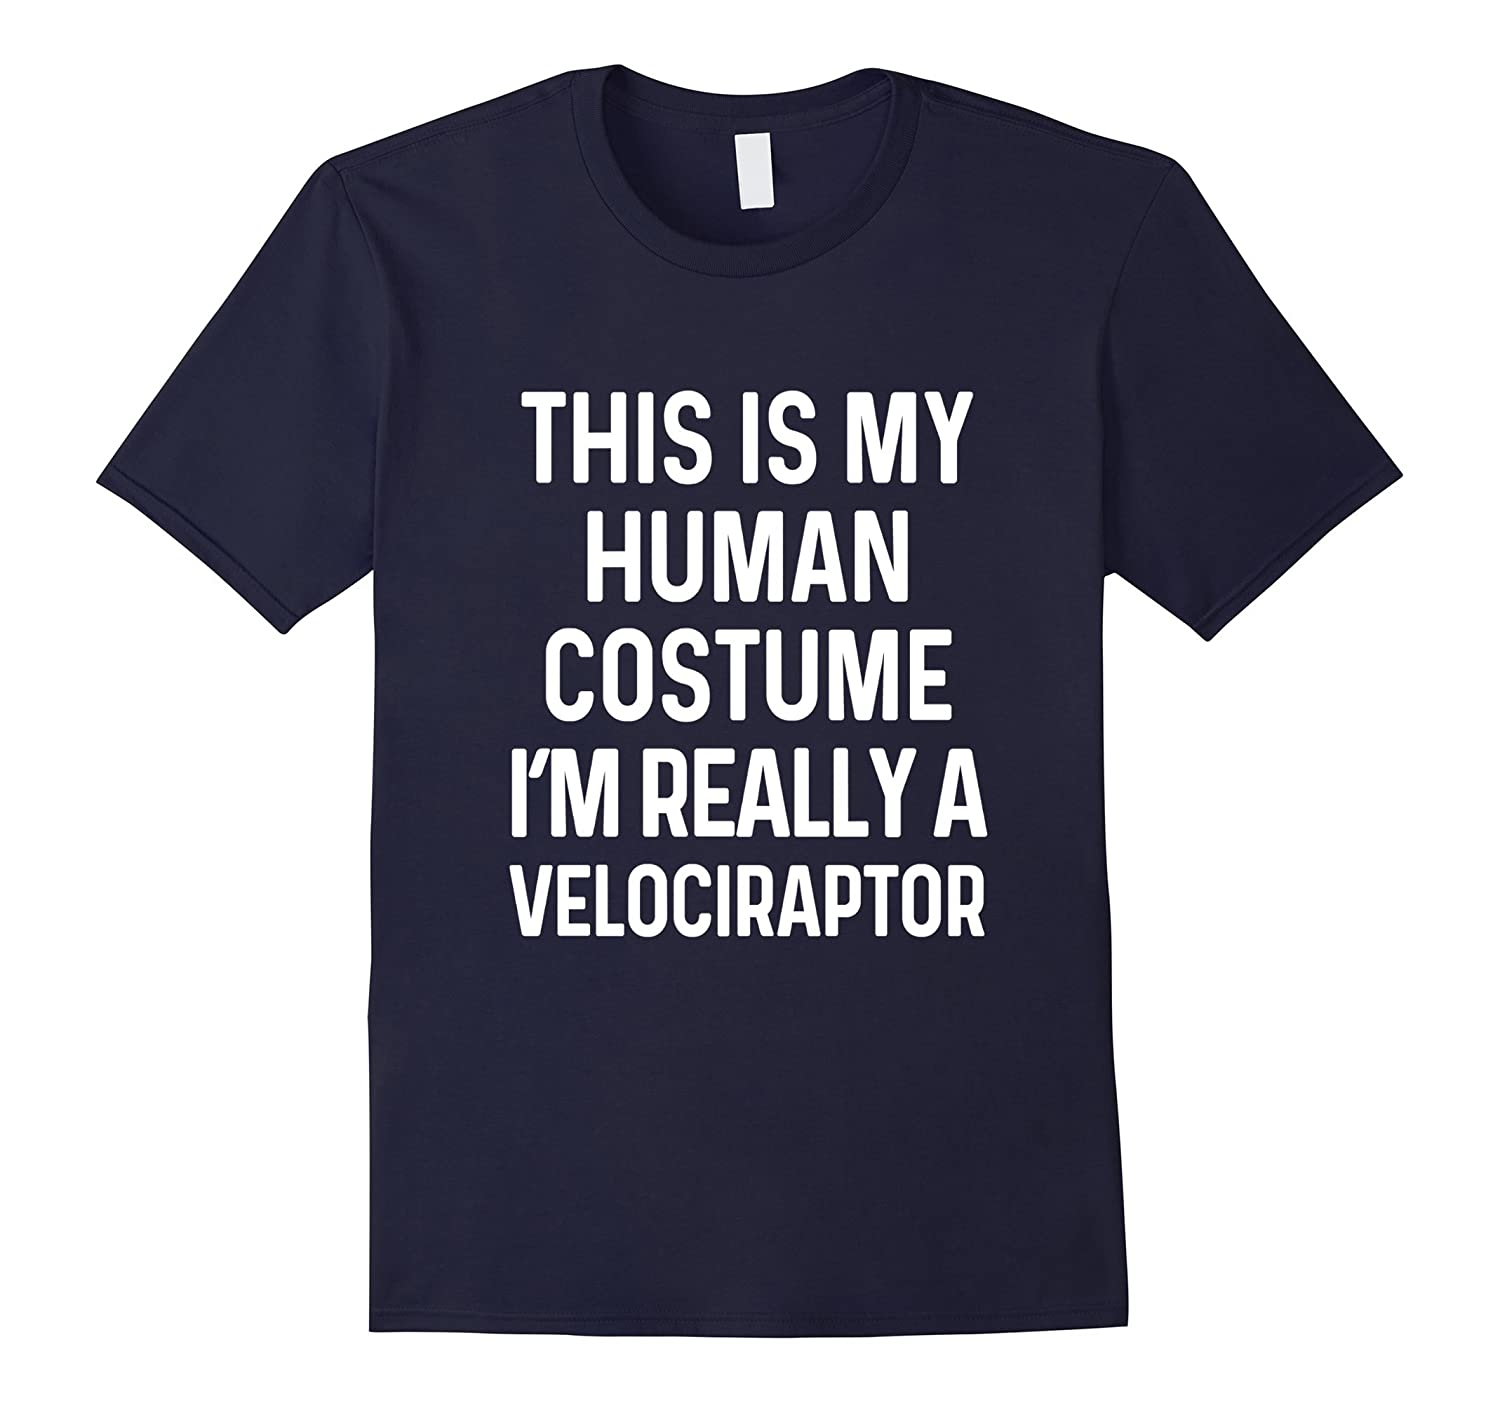 Funny Velociraptor Costume Shirt Halloween Men Women Kids-T-Shirt